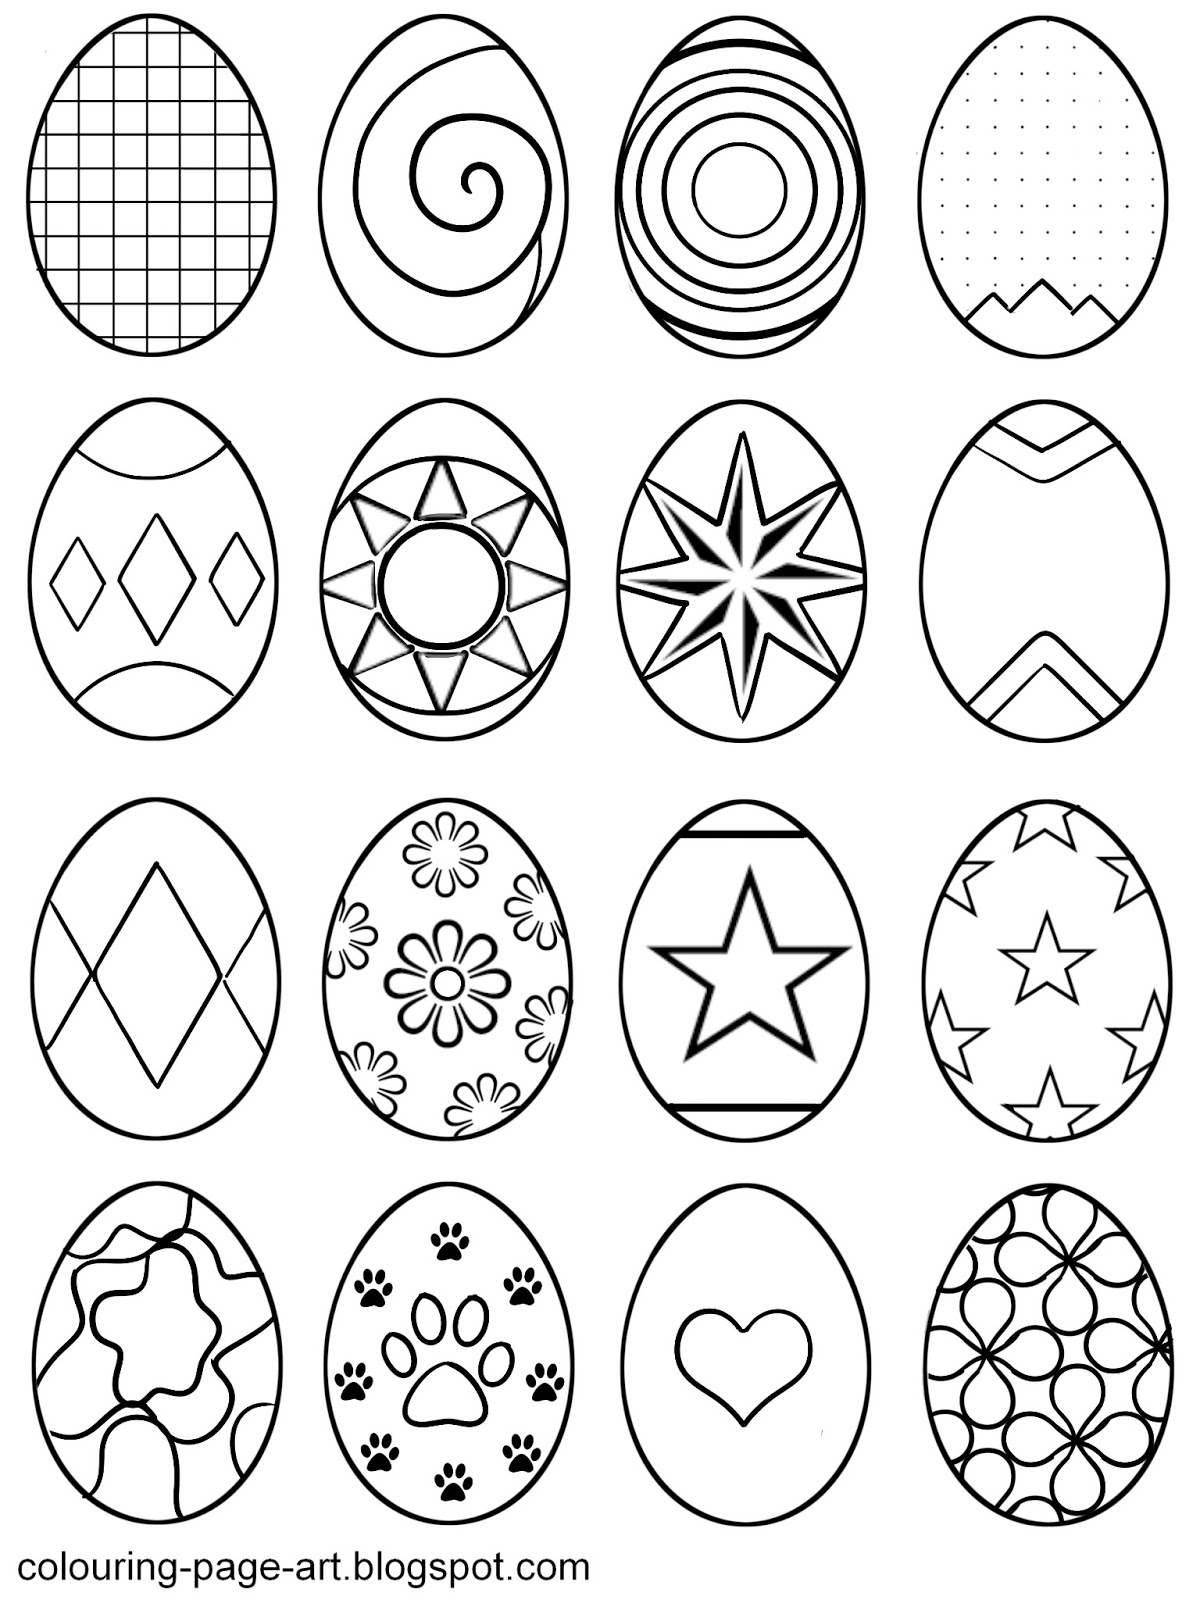 printable easter egg coloring pages easter egg printable colouring pages hubpages easter coloring pages printable egg